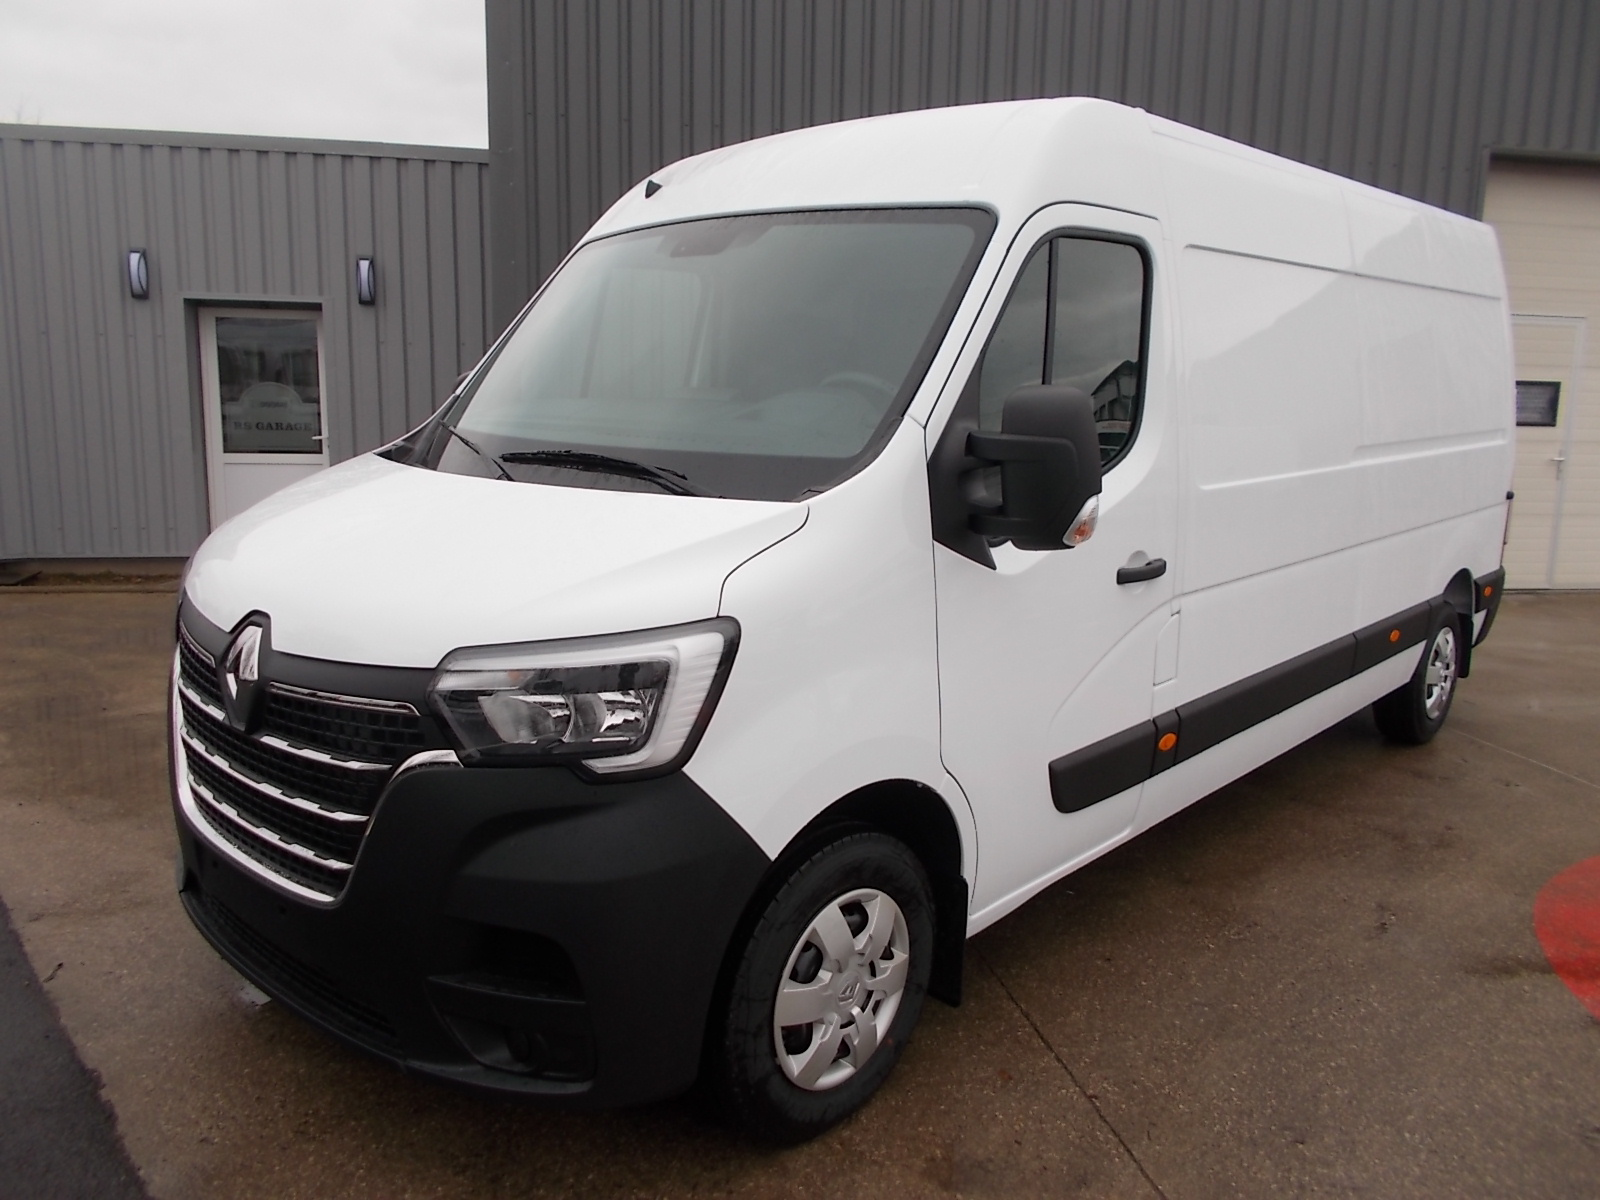 RENAULT MASTER ( PHASE 2 ) L3H2 T35 FOURGON 2.3 BLUE DCI 135 EXTRA R-LINK